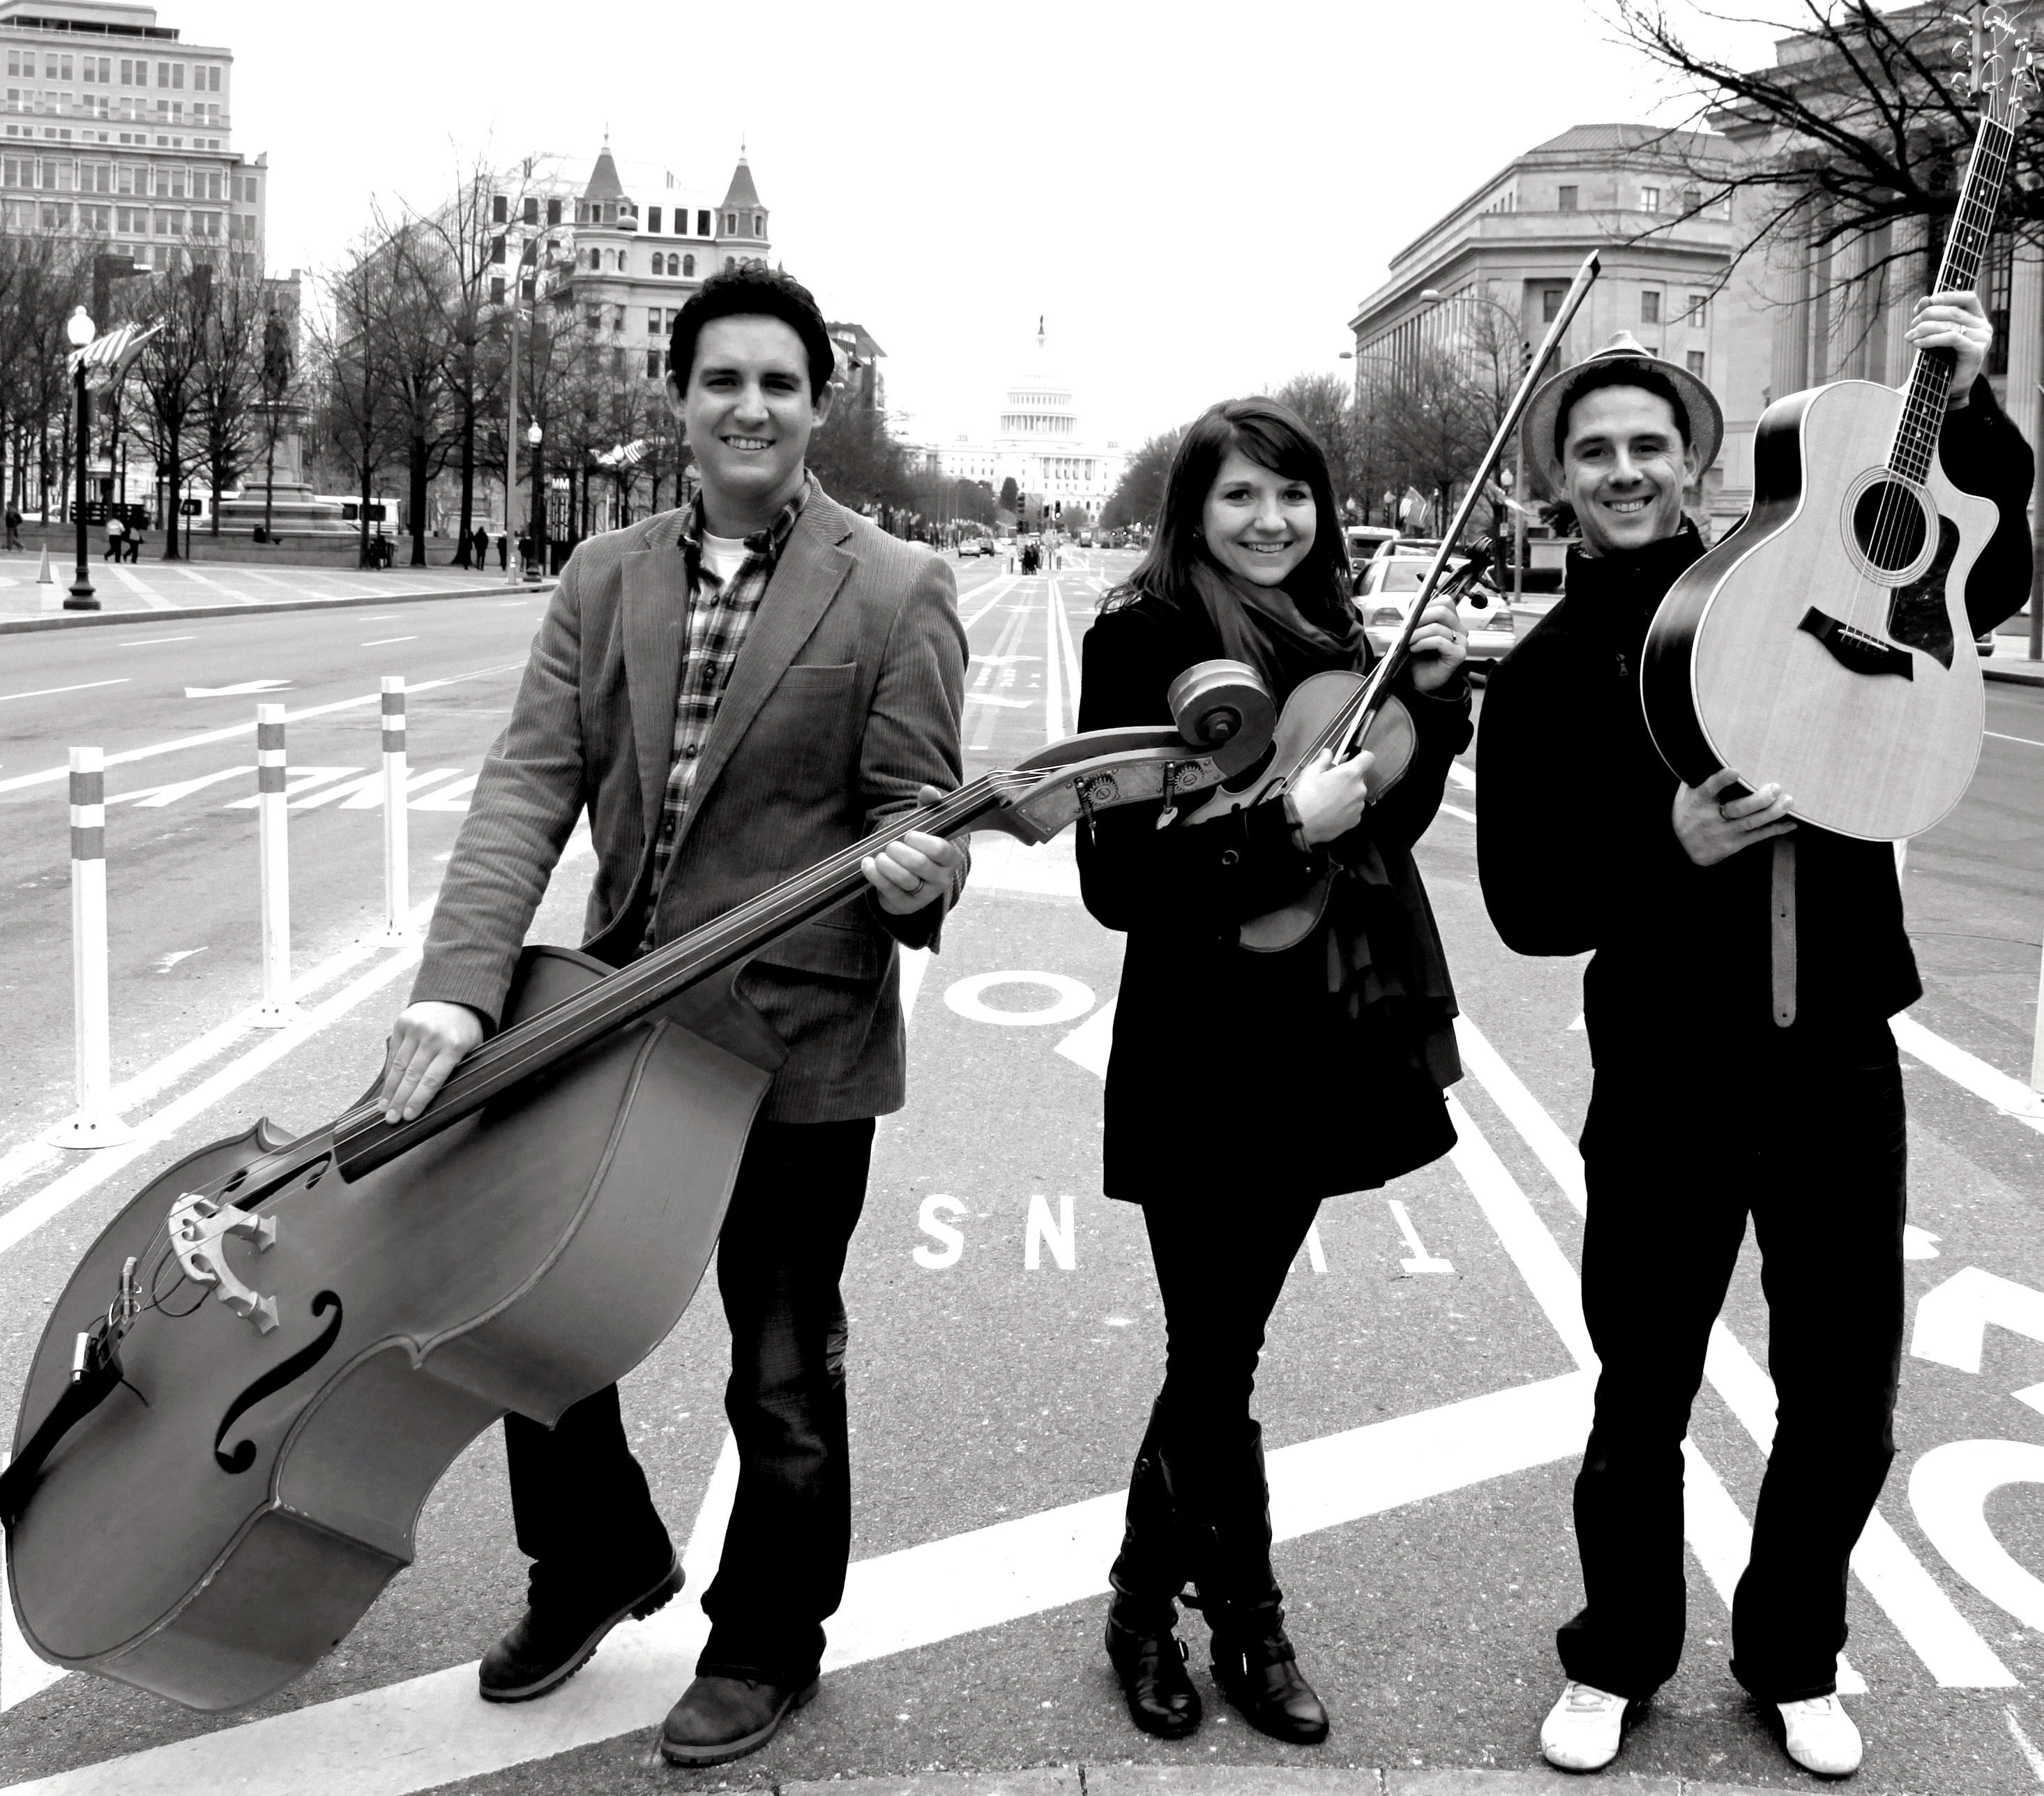 The 19th Street band trio with bass, violin, and guitar standing in DC street